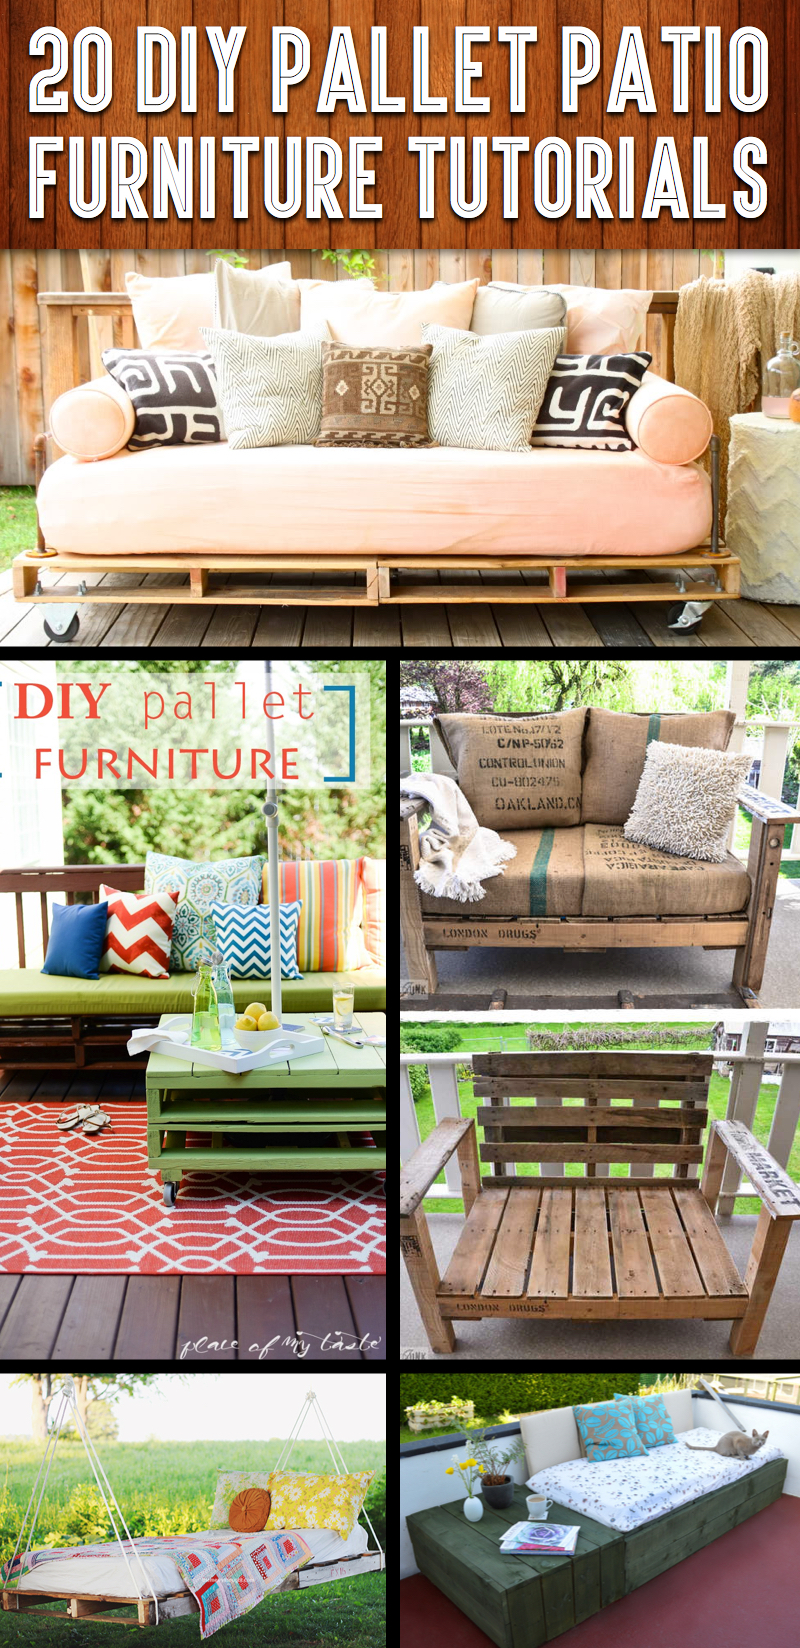 shipping pallet furniture ideas. 20 DIY Pallet Patio Furniture Tutorials For A Chic And Practical Outdoor Patio! Shipping Ideas